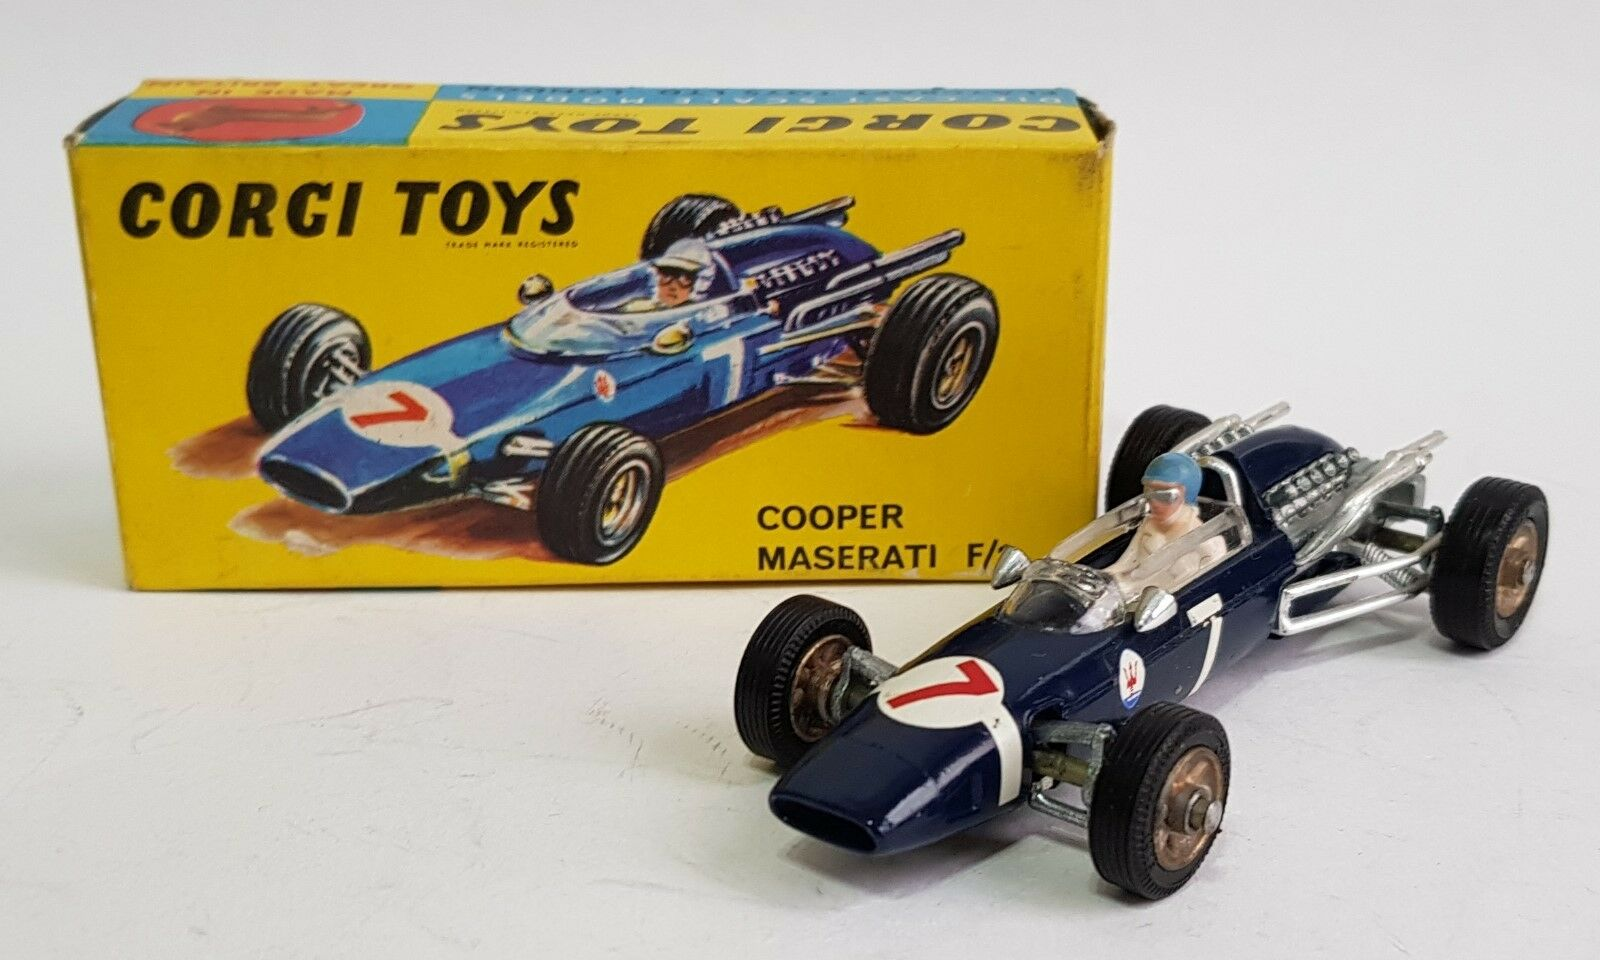 Corgi Toys No. 156, Cooper - Maserati Maserati Maserati F1 Racing Car, - Superb Mint. c69958